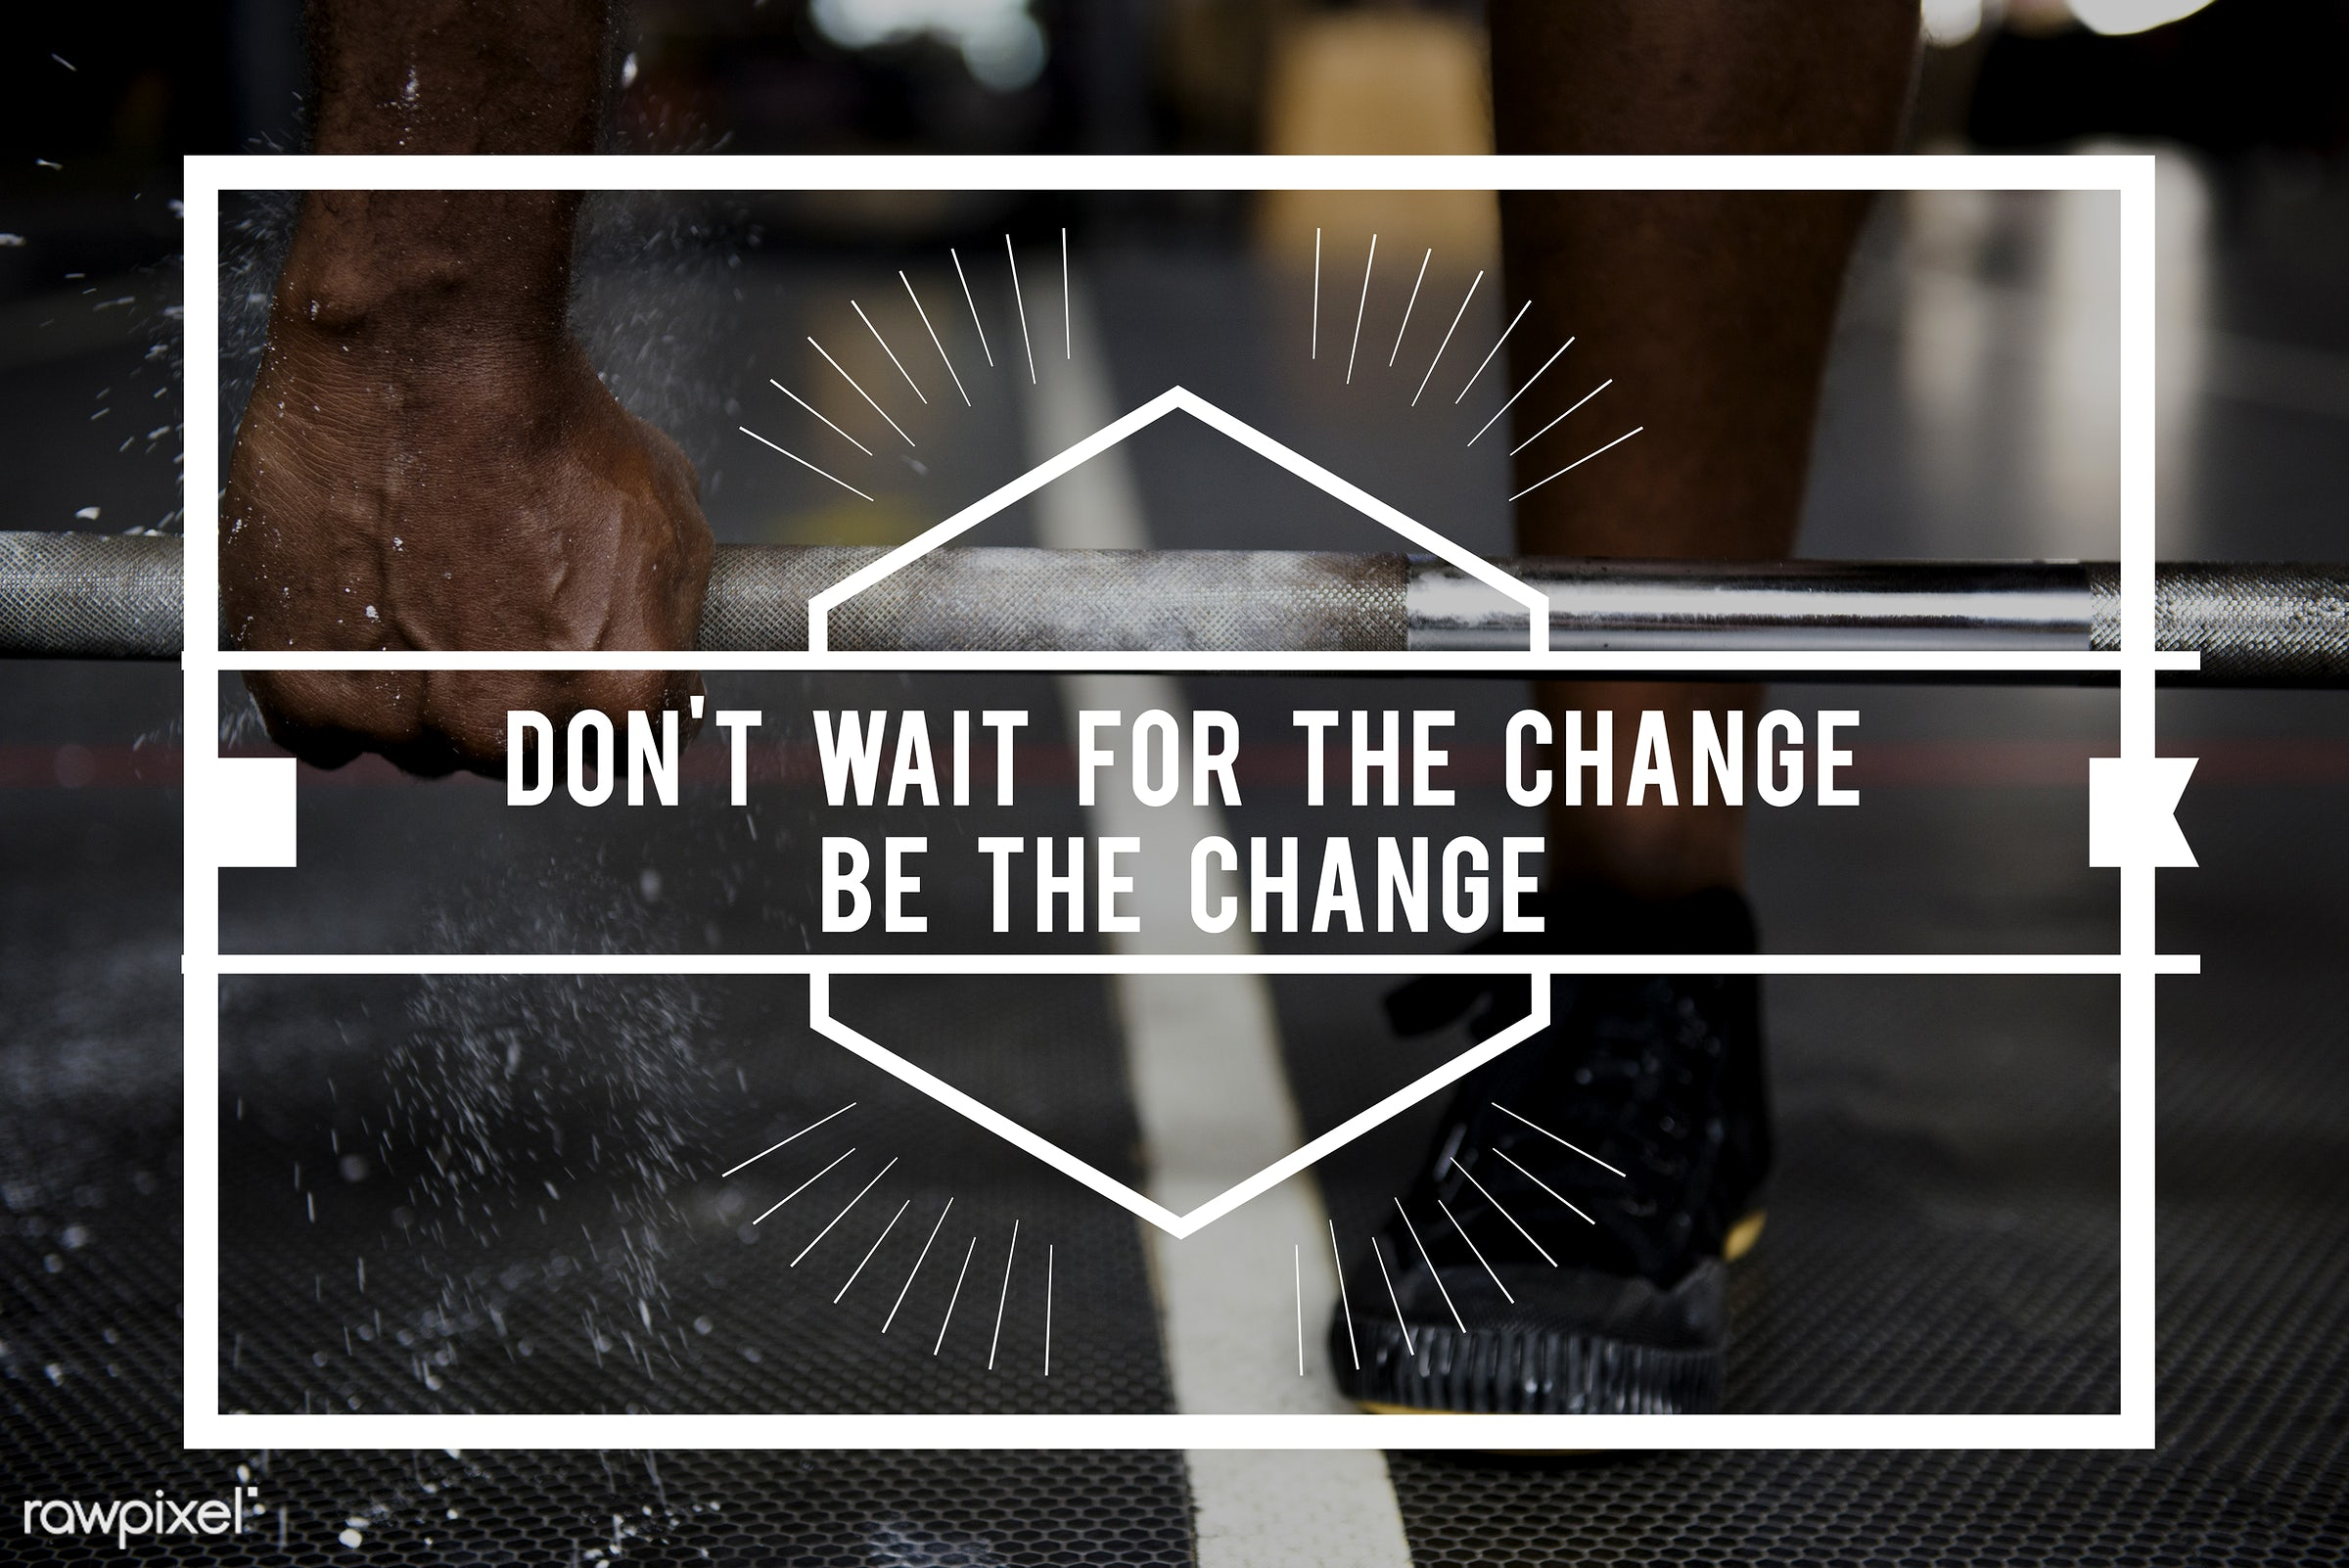 change, gym, fitness, activity, african descent, barbell, be, black, black people, body, build, challenge, daily, don't wait...